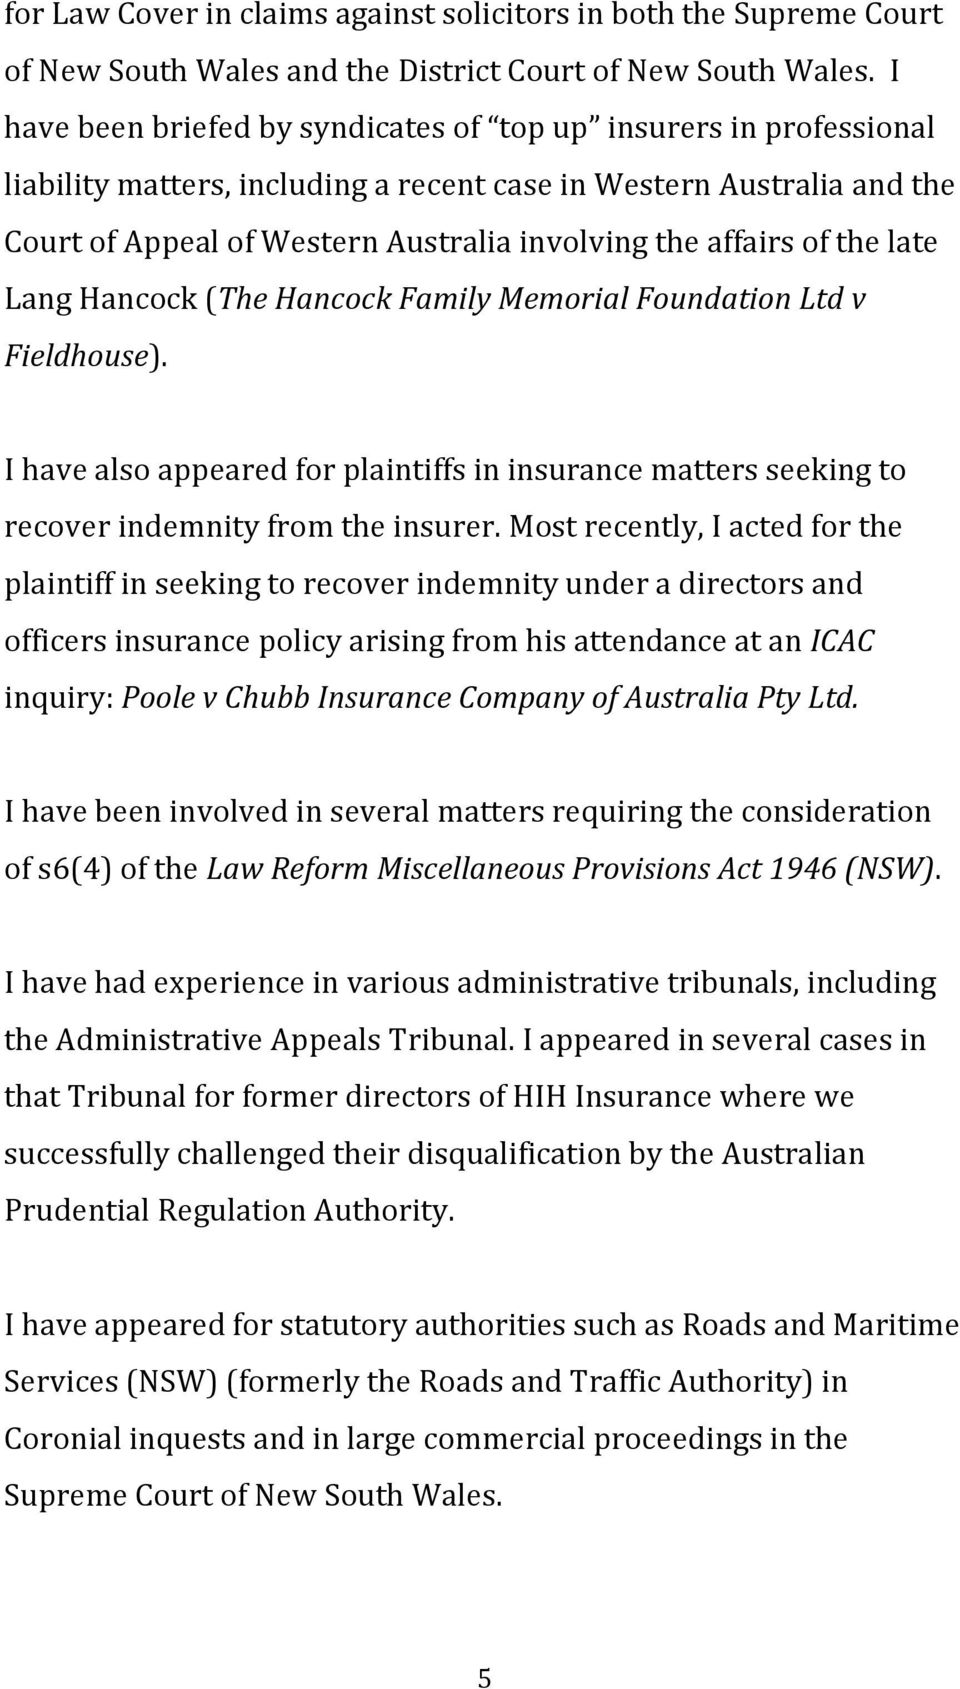 of the late Lang Hancock (The Hancock Family Memorial Foundation Ltd v Fieldhouse). I have also appeared for plaintiffs in insurance matters seeking to recover indemnity from the insurer.